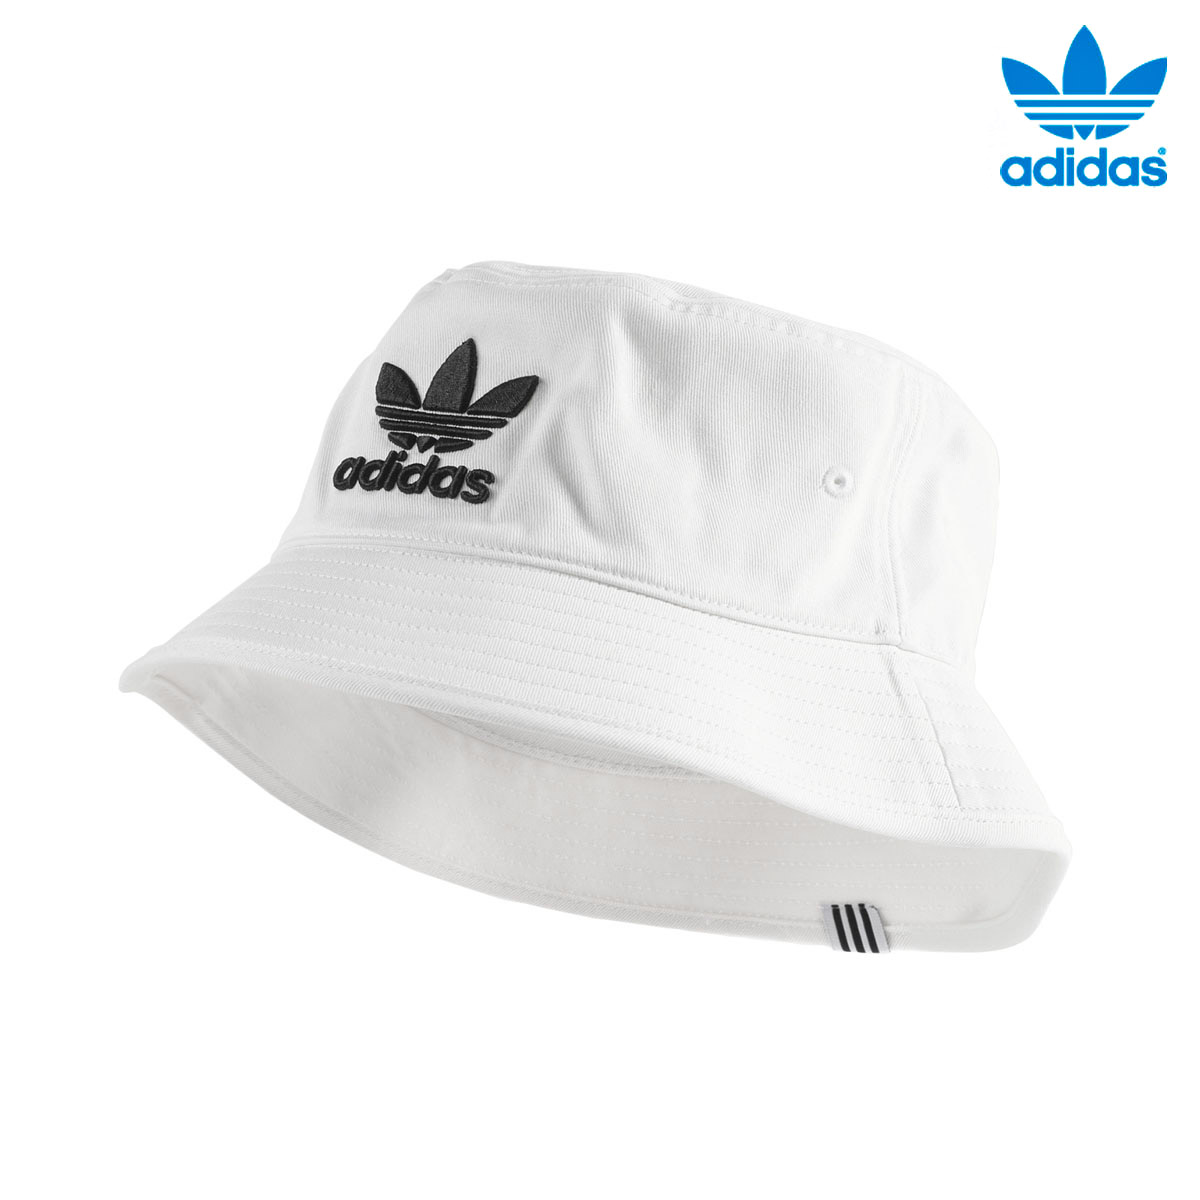 6414d0025f2 adidas Originals BUCKET HAT AC (Adidas original Suva blanket hat AC) WHITE  18SS-I